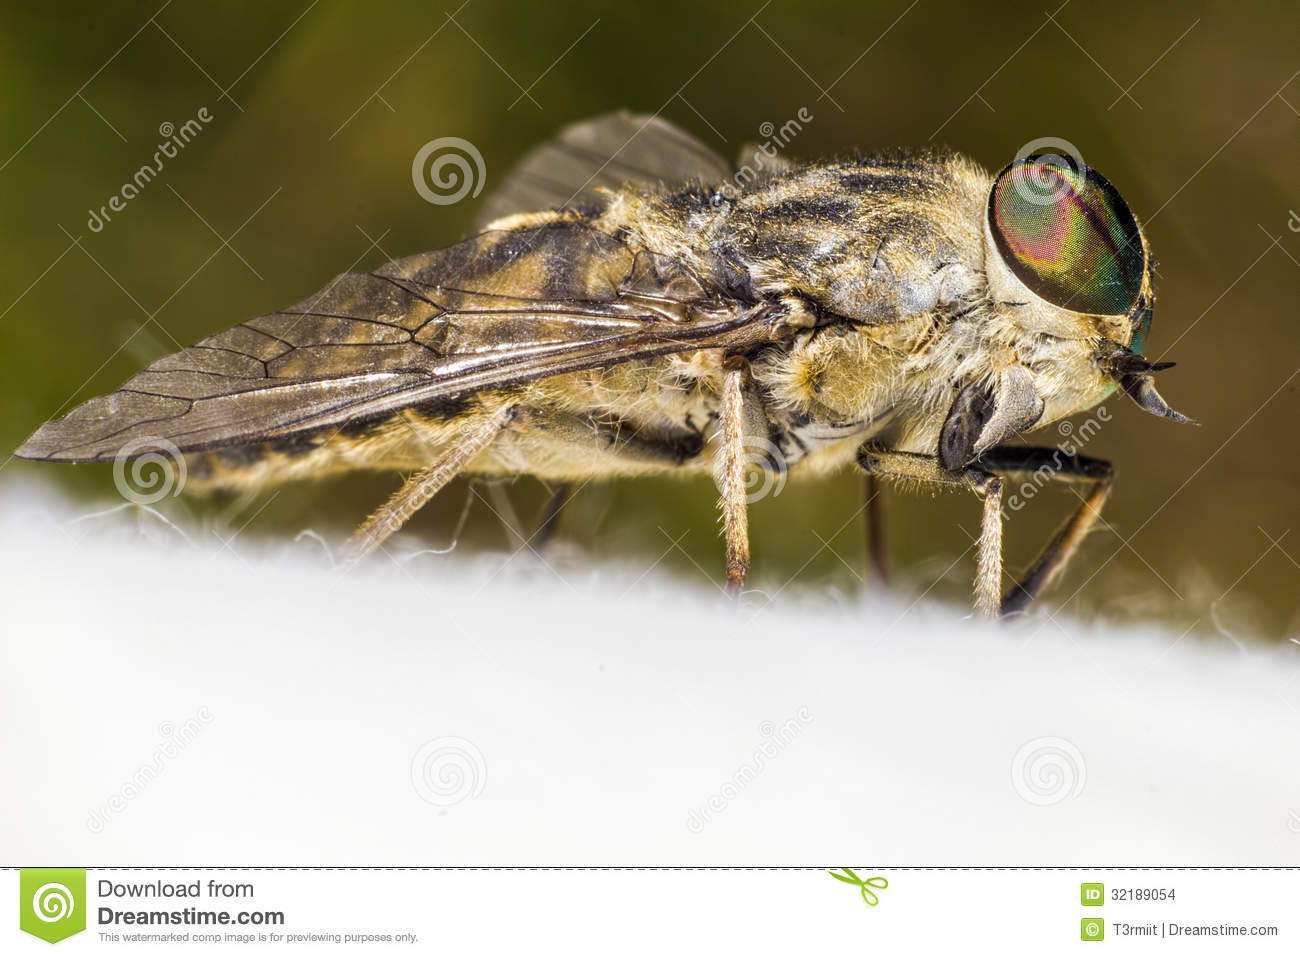 how to keep horse flies from biting you